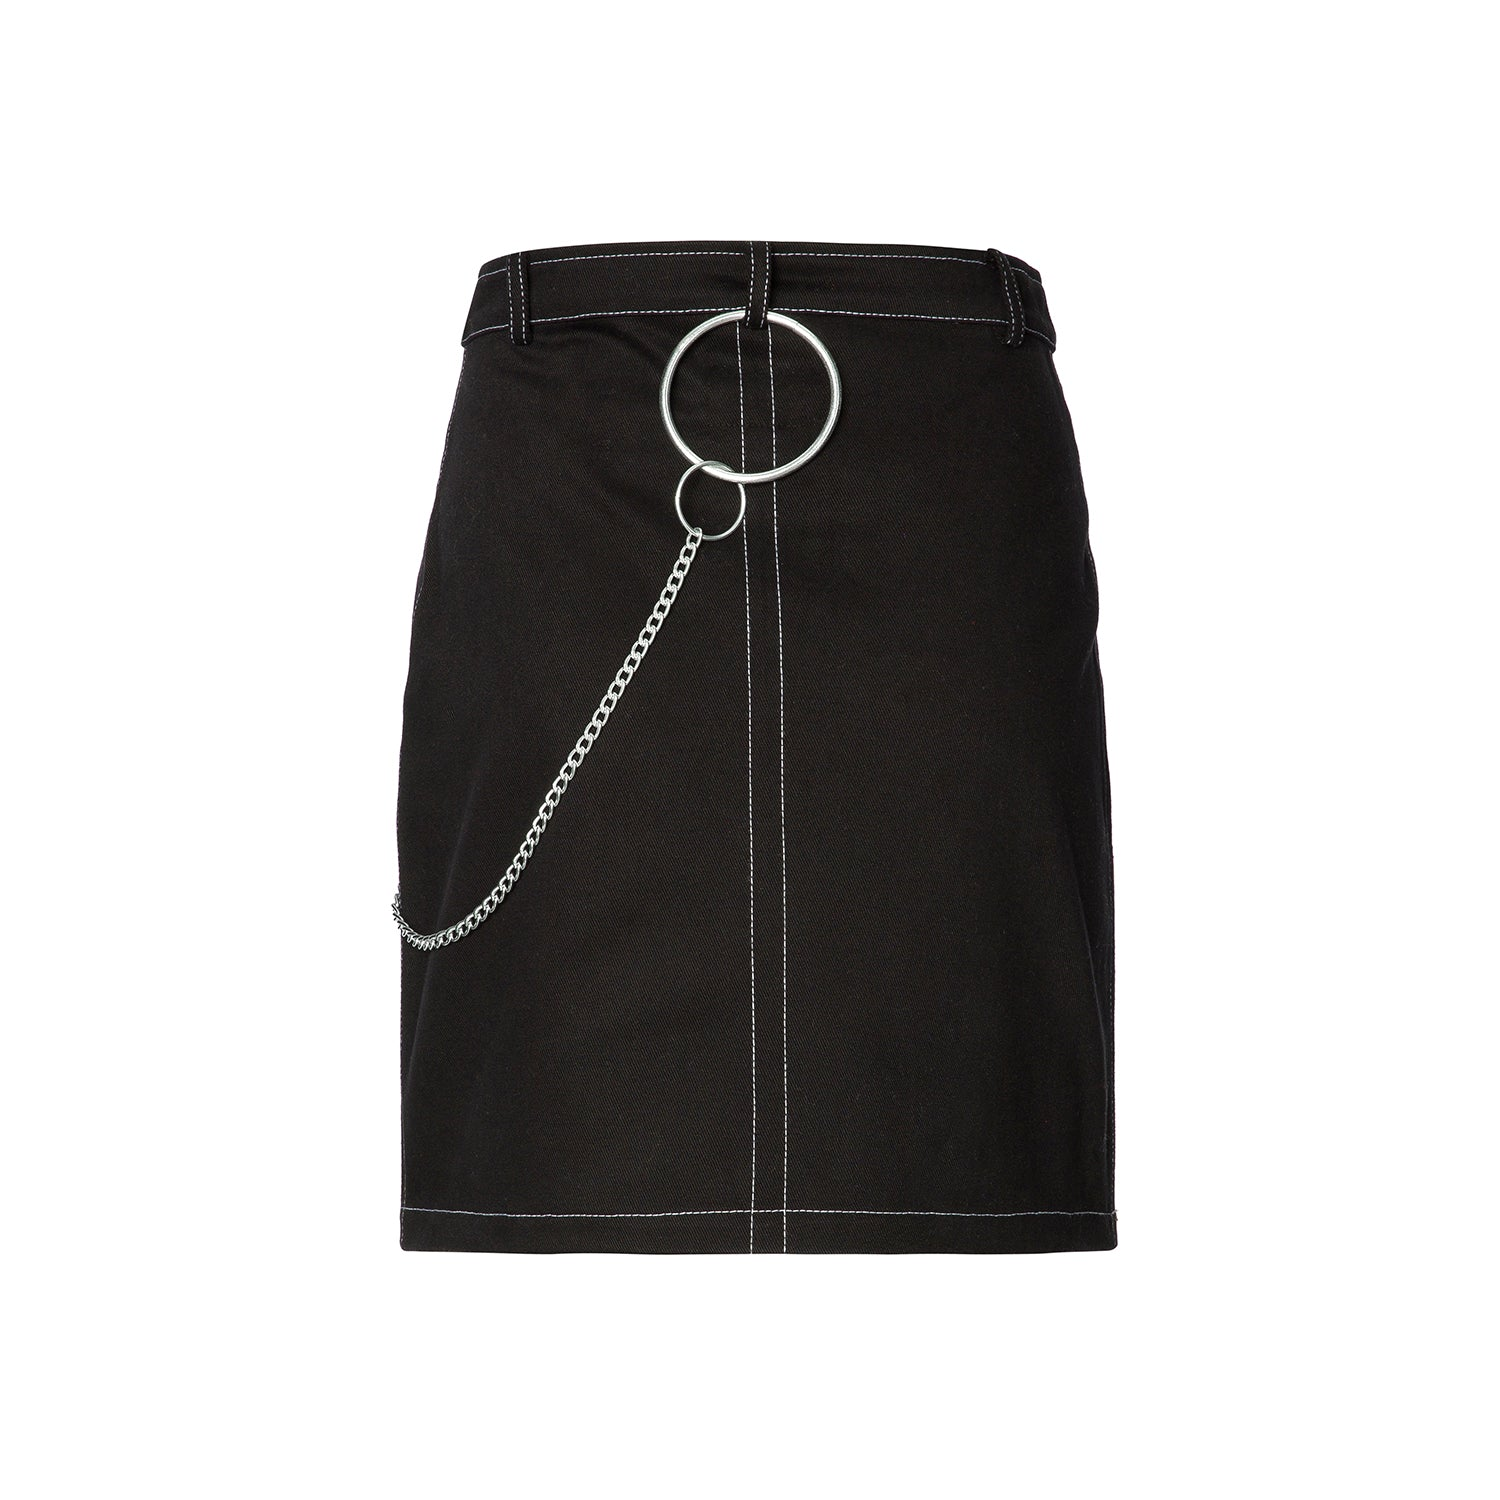 FAKE IS THE NEW BLACK MINI SKIRT